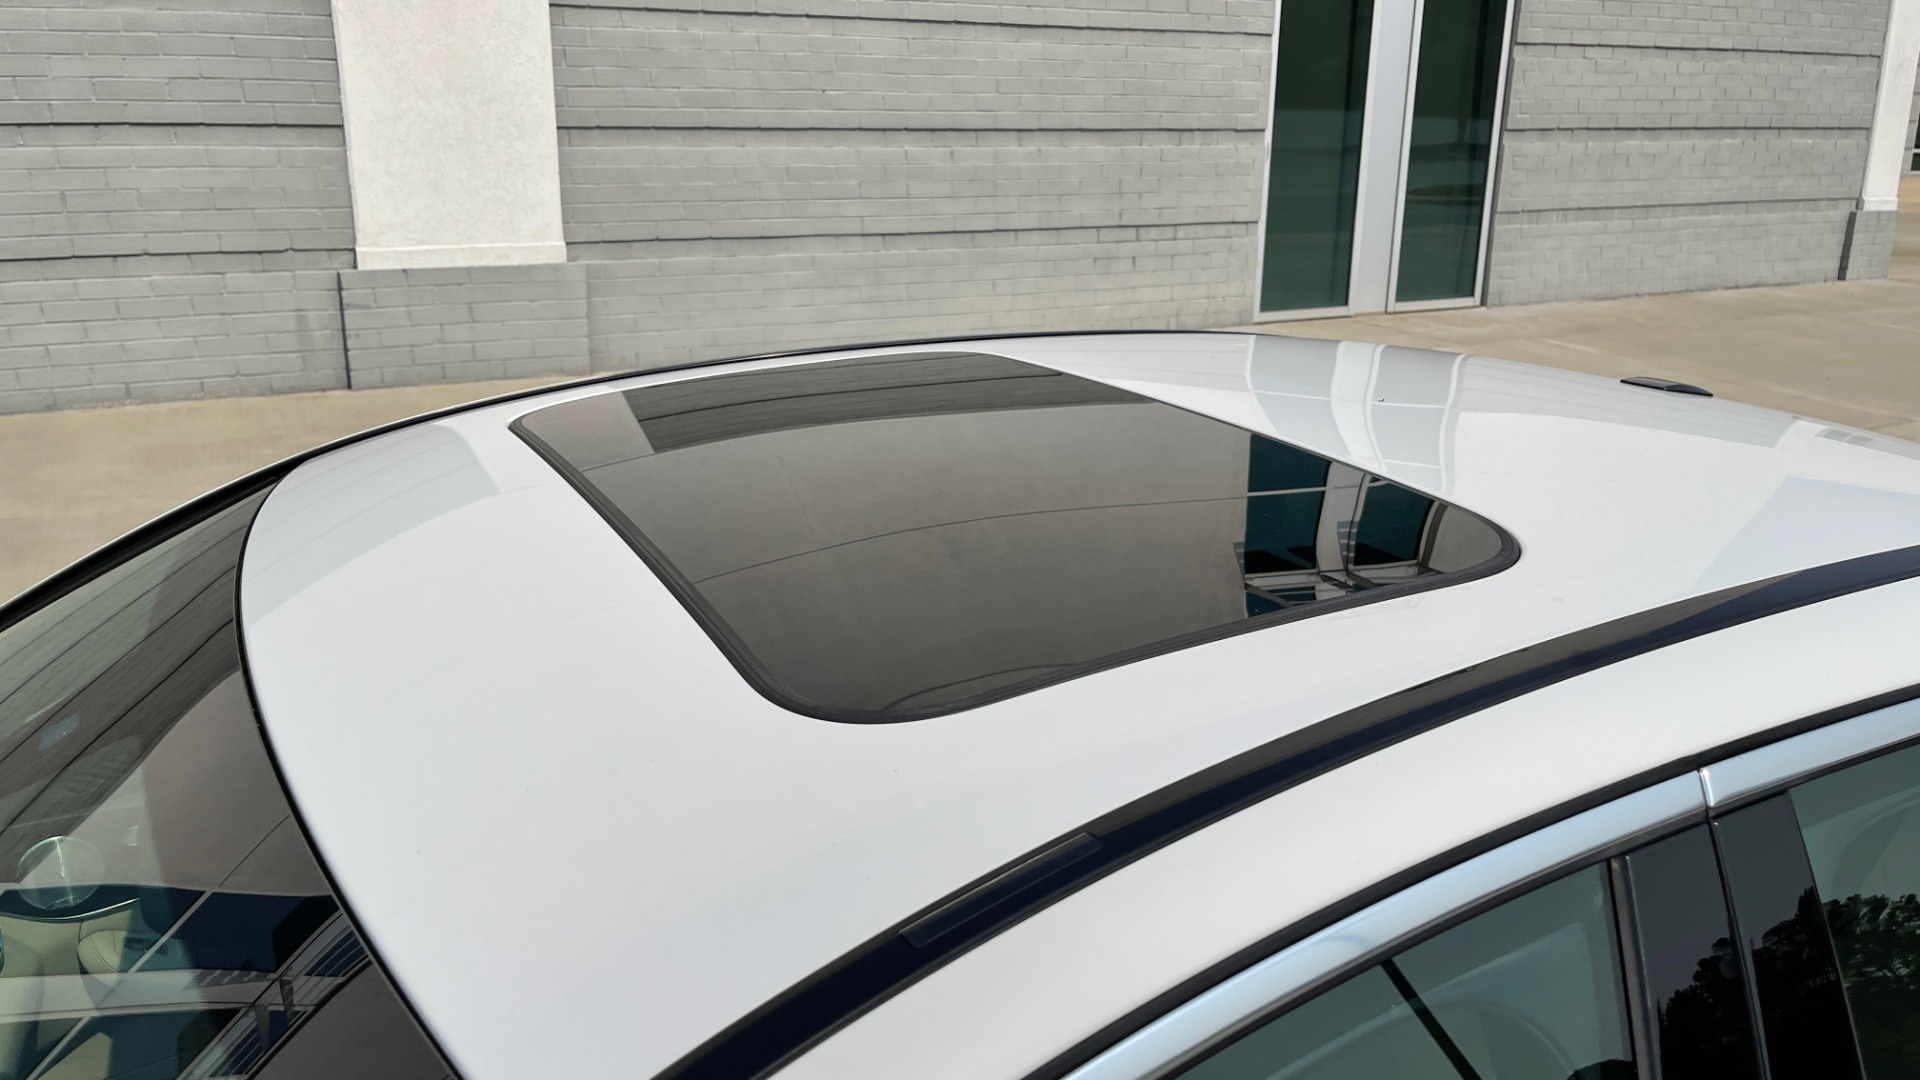 Used 2018 Mercedes-Benz C-Class C 300 4MATIC / PREMIUM / BURMESTER / HTD STS / SUNROOF / REARVIEW for sale $33,995 at Formula Imports in Charlotte NC 28227 8